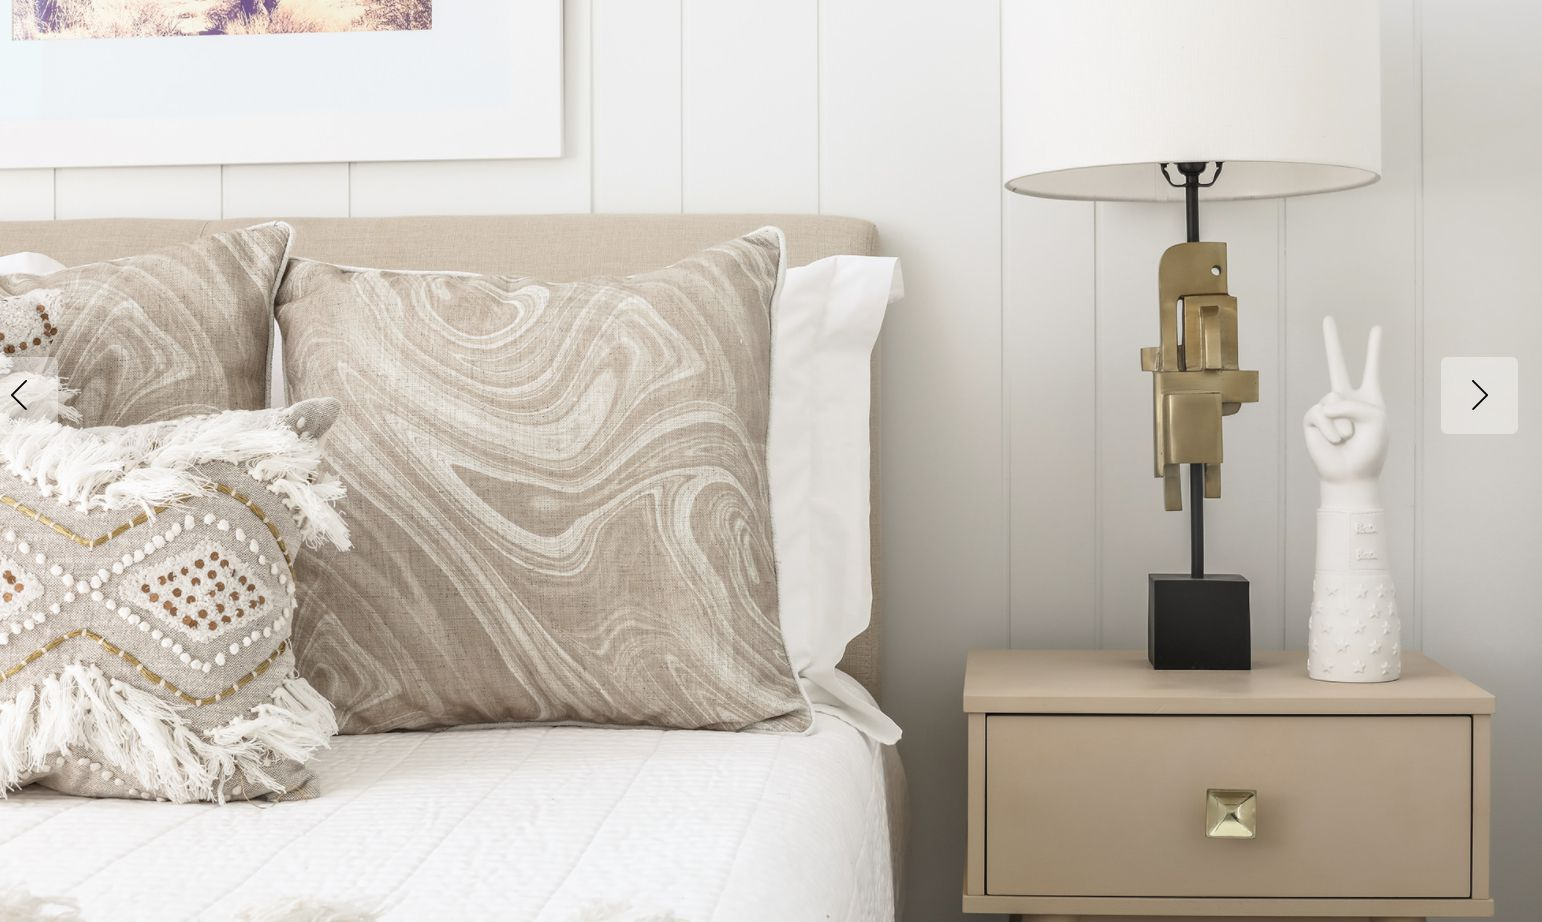 bedroom with white statue of hand making peace sign and abstract base of lamp